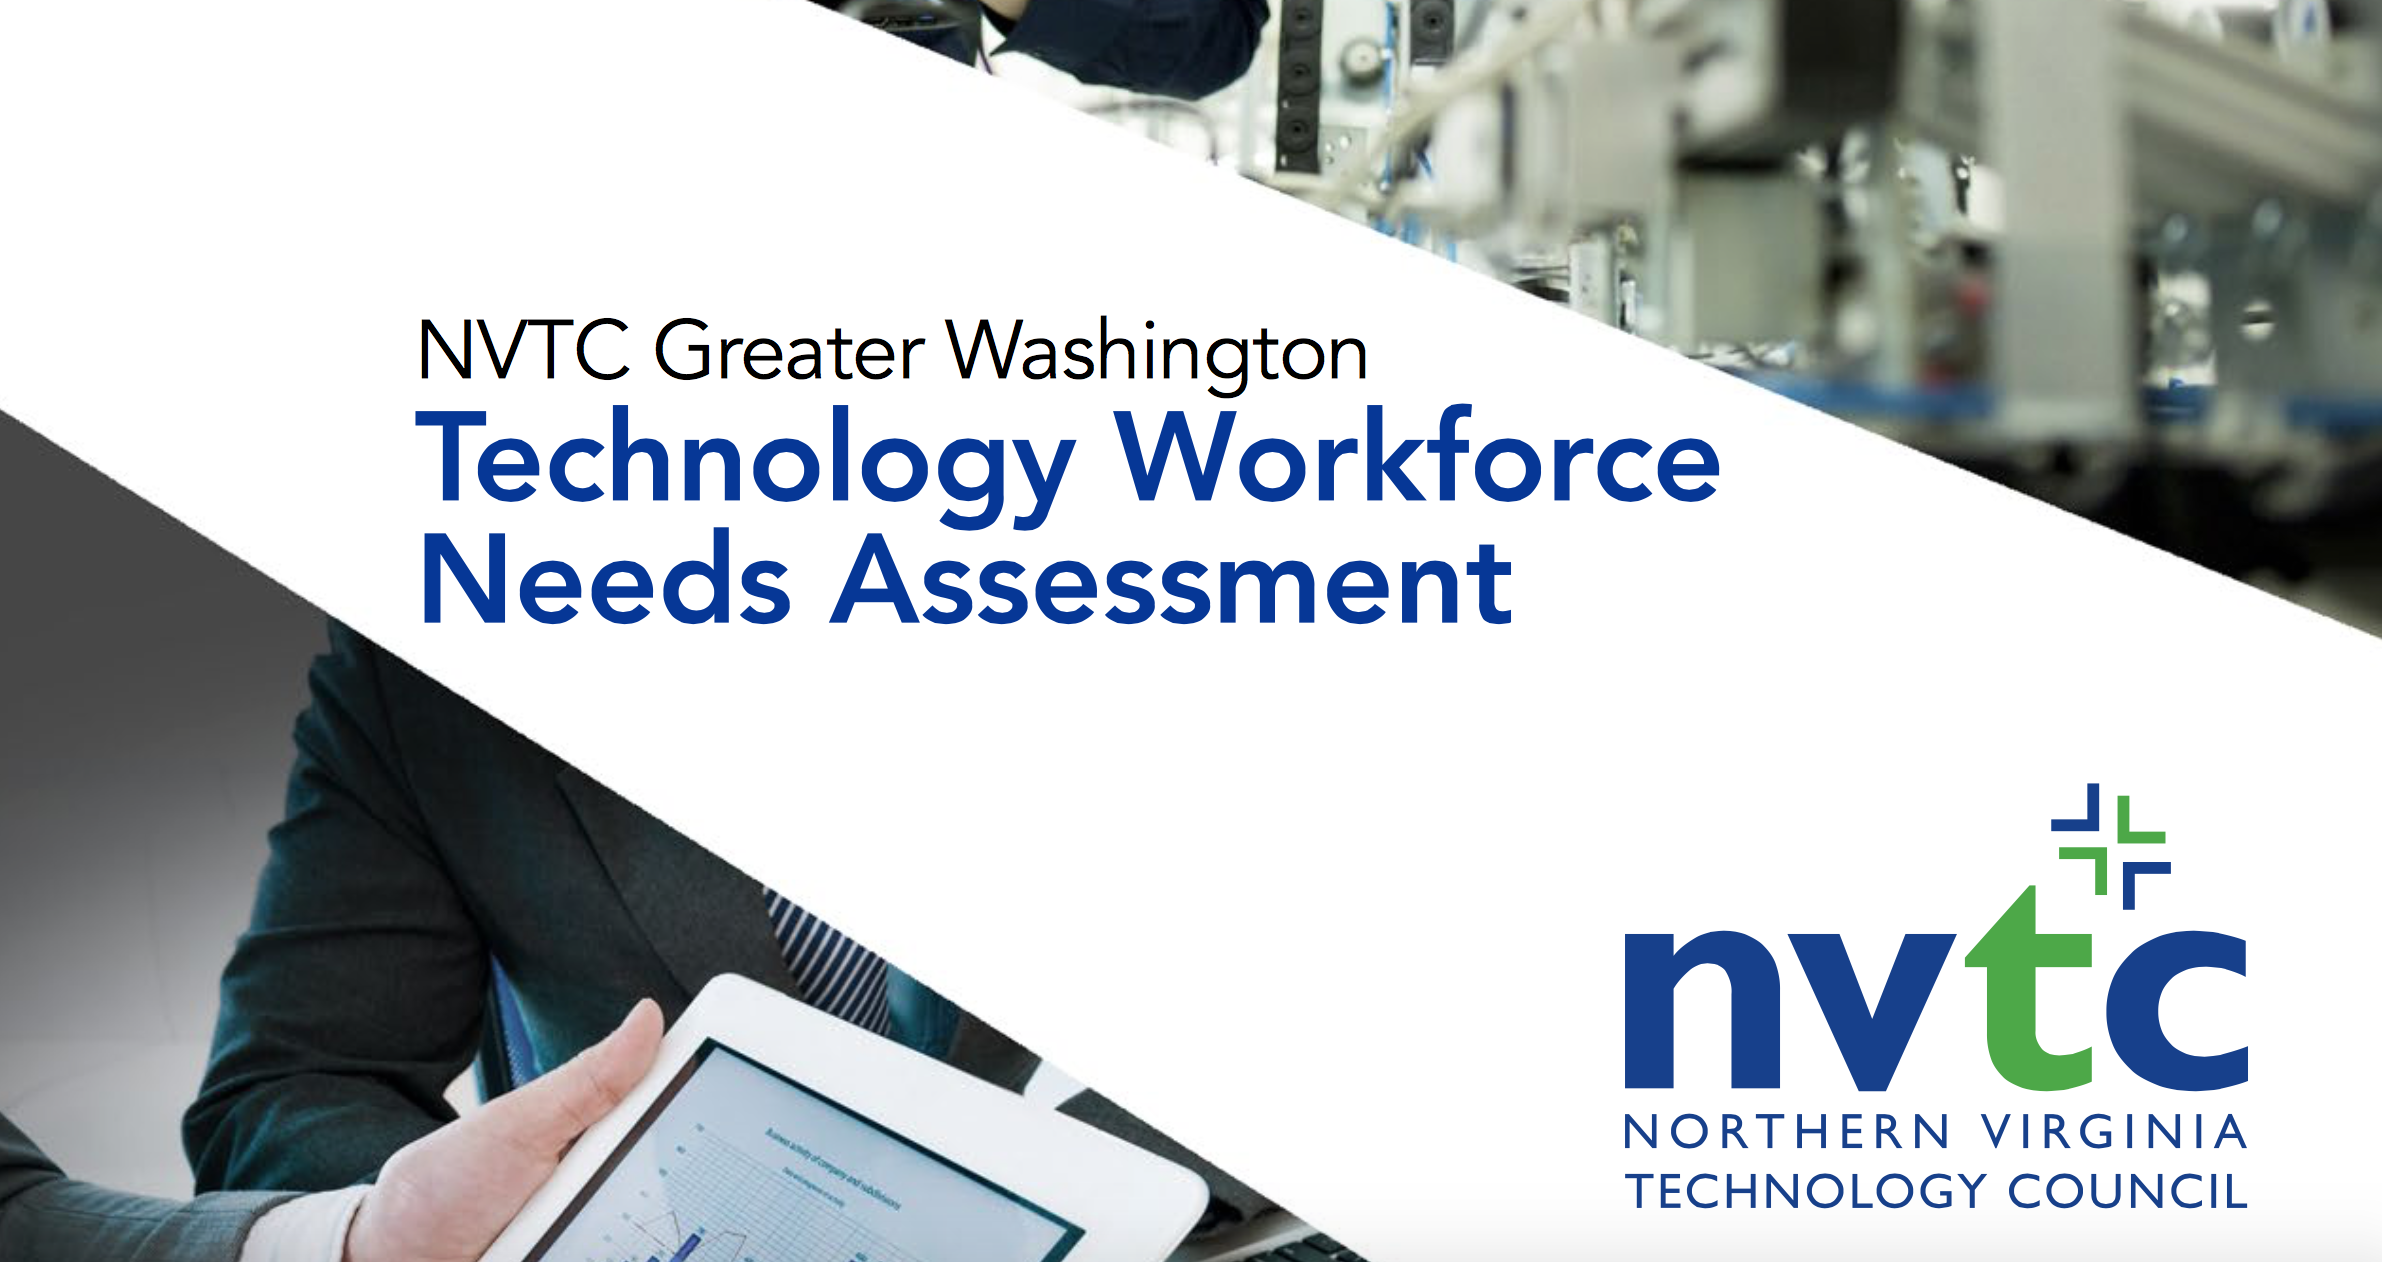 Summary of the NVTC Technology Workforce Needs Assessment Report